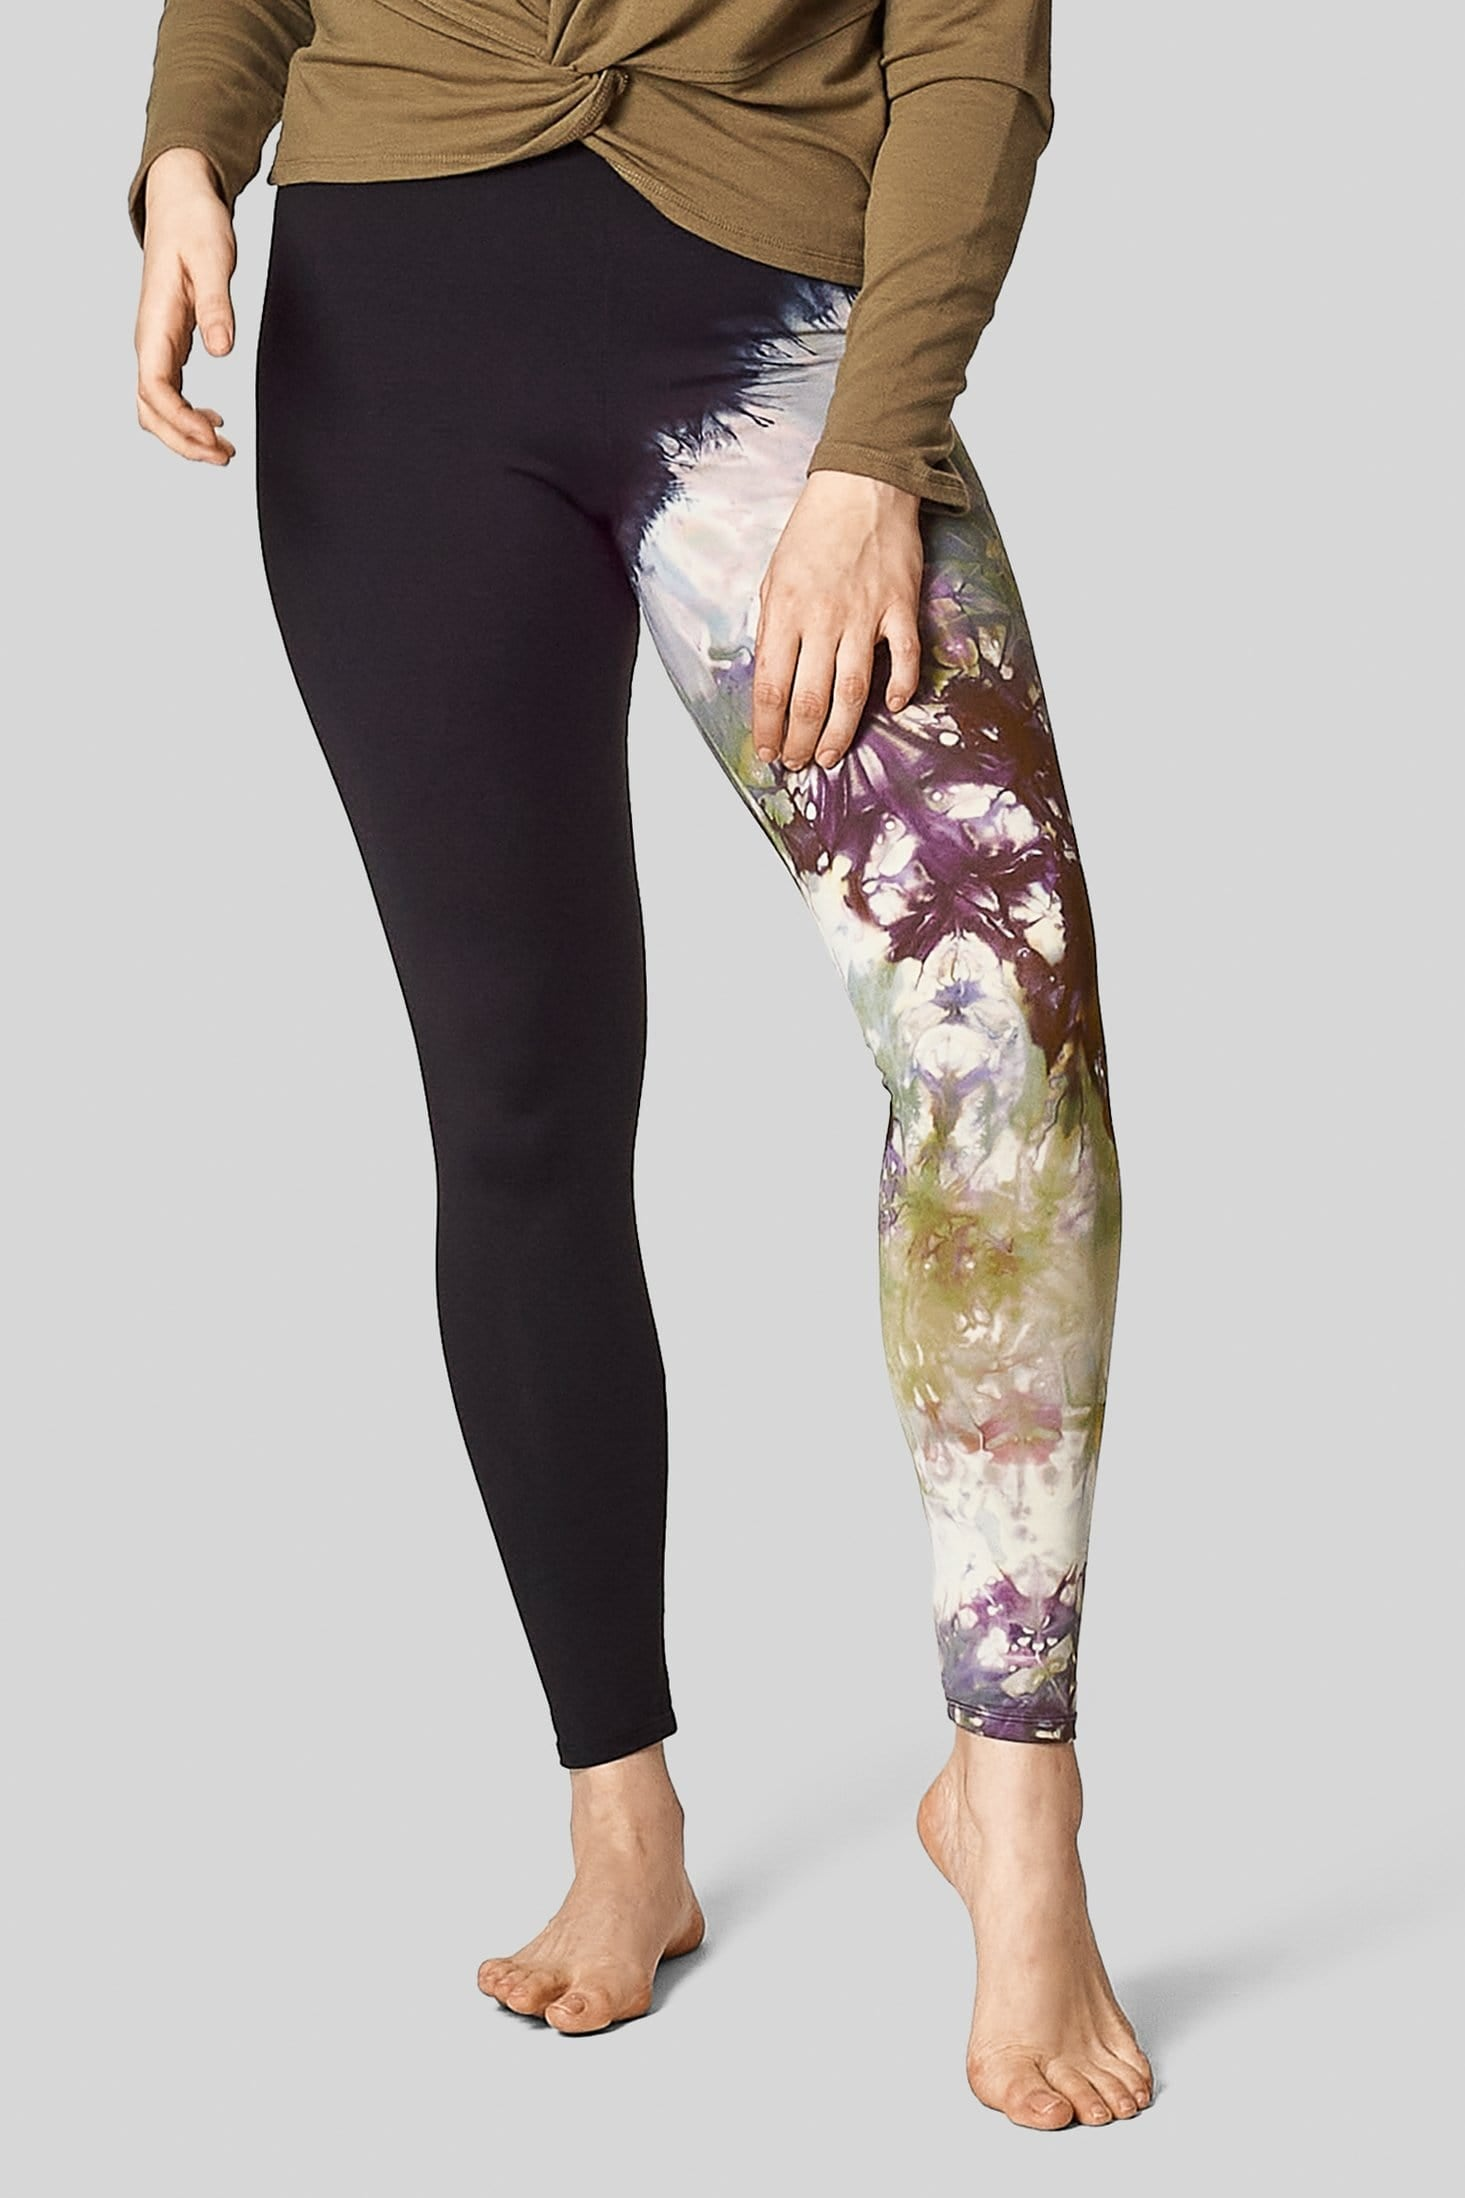 A size 12 model wears a pair of hand-dyed activewear leggings.